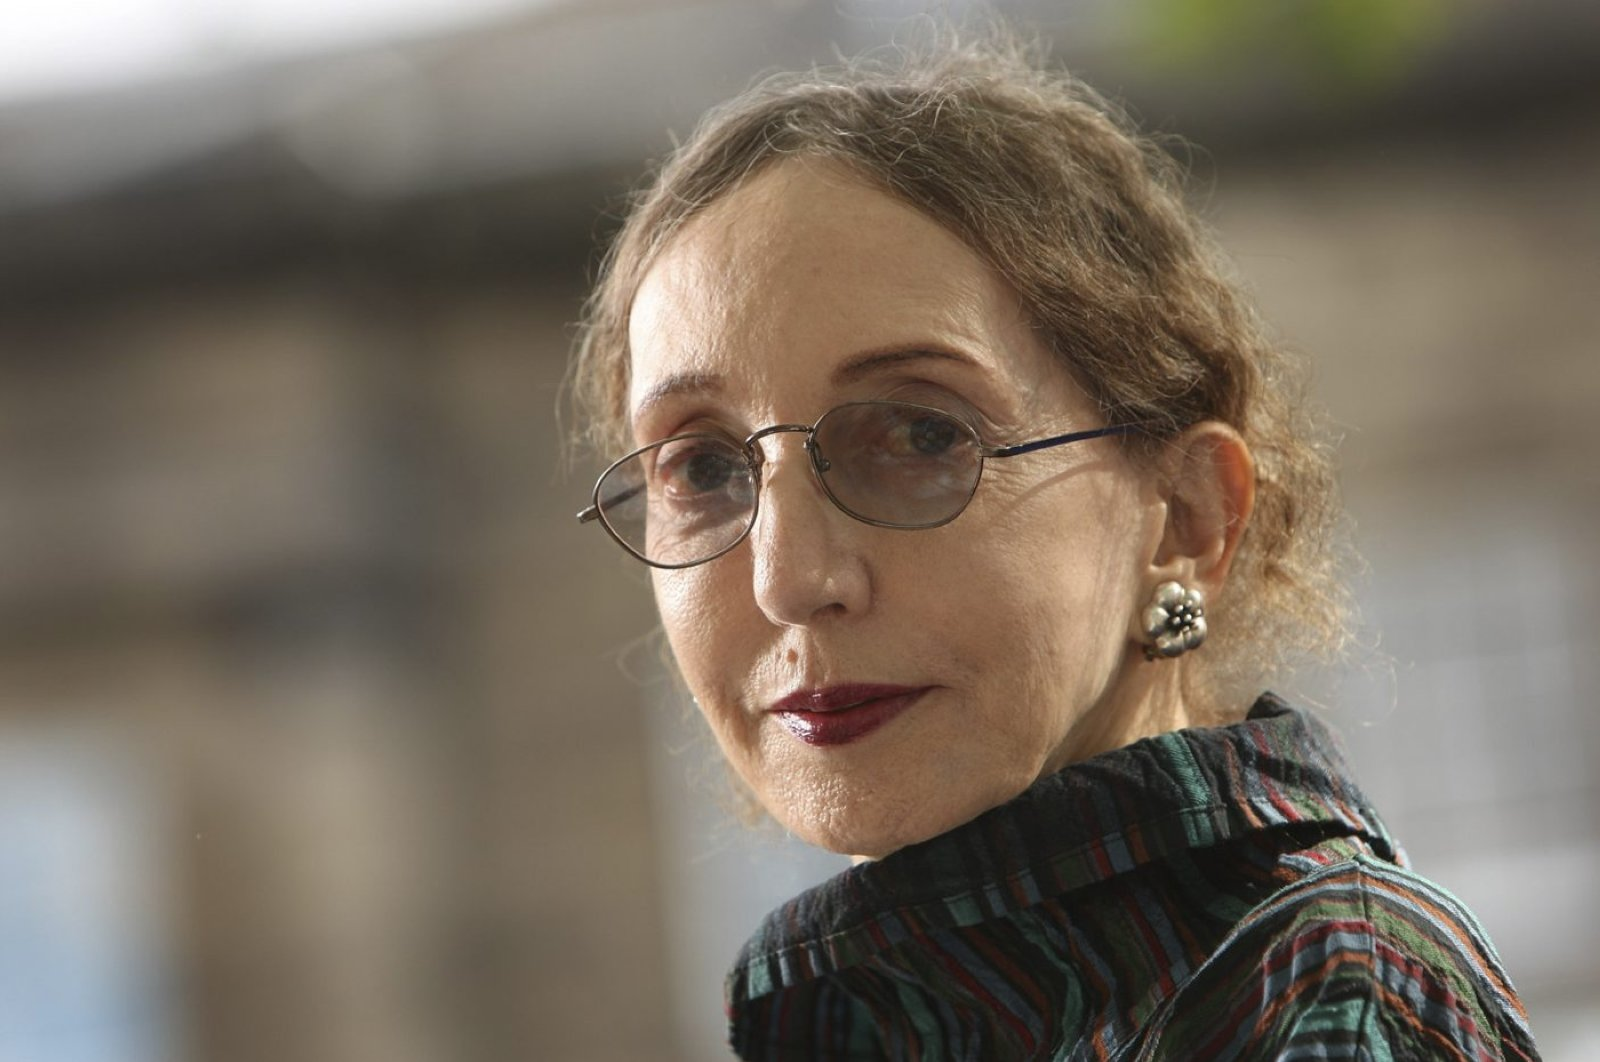 Joyce Carol Oates, an acclaimed U.S. novelist, appears at a photocall prior to participating in the Edinburgh International Book Festival 2012, Edinburgh, Scotland, Aug. 20, 2012. (Photo by Getty Images)